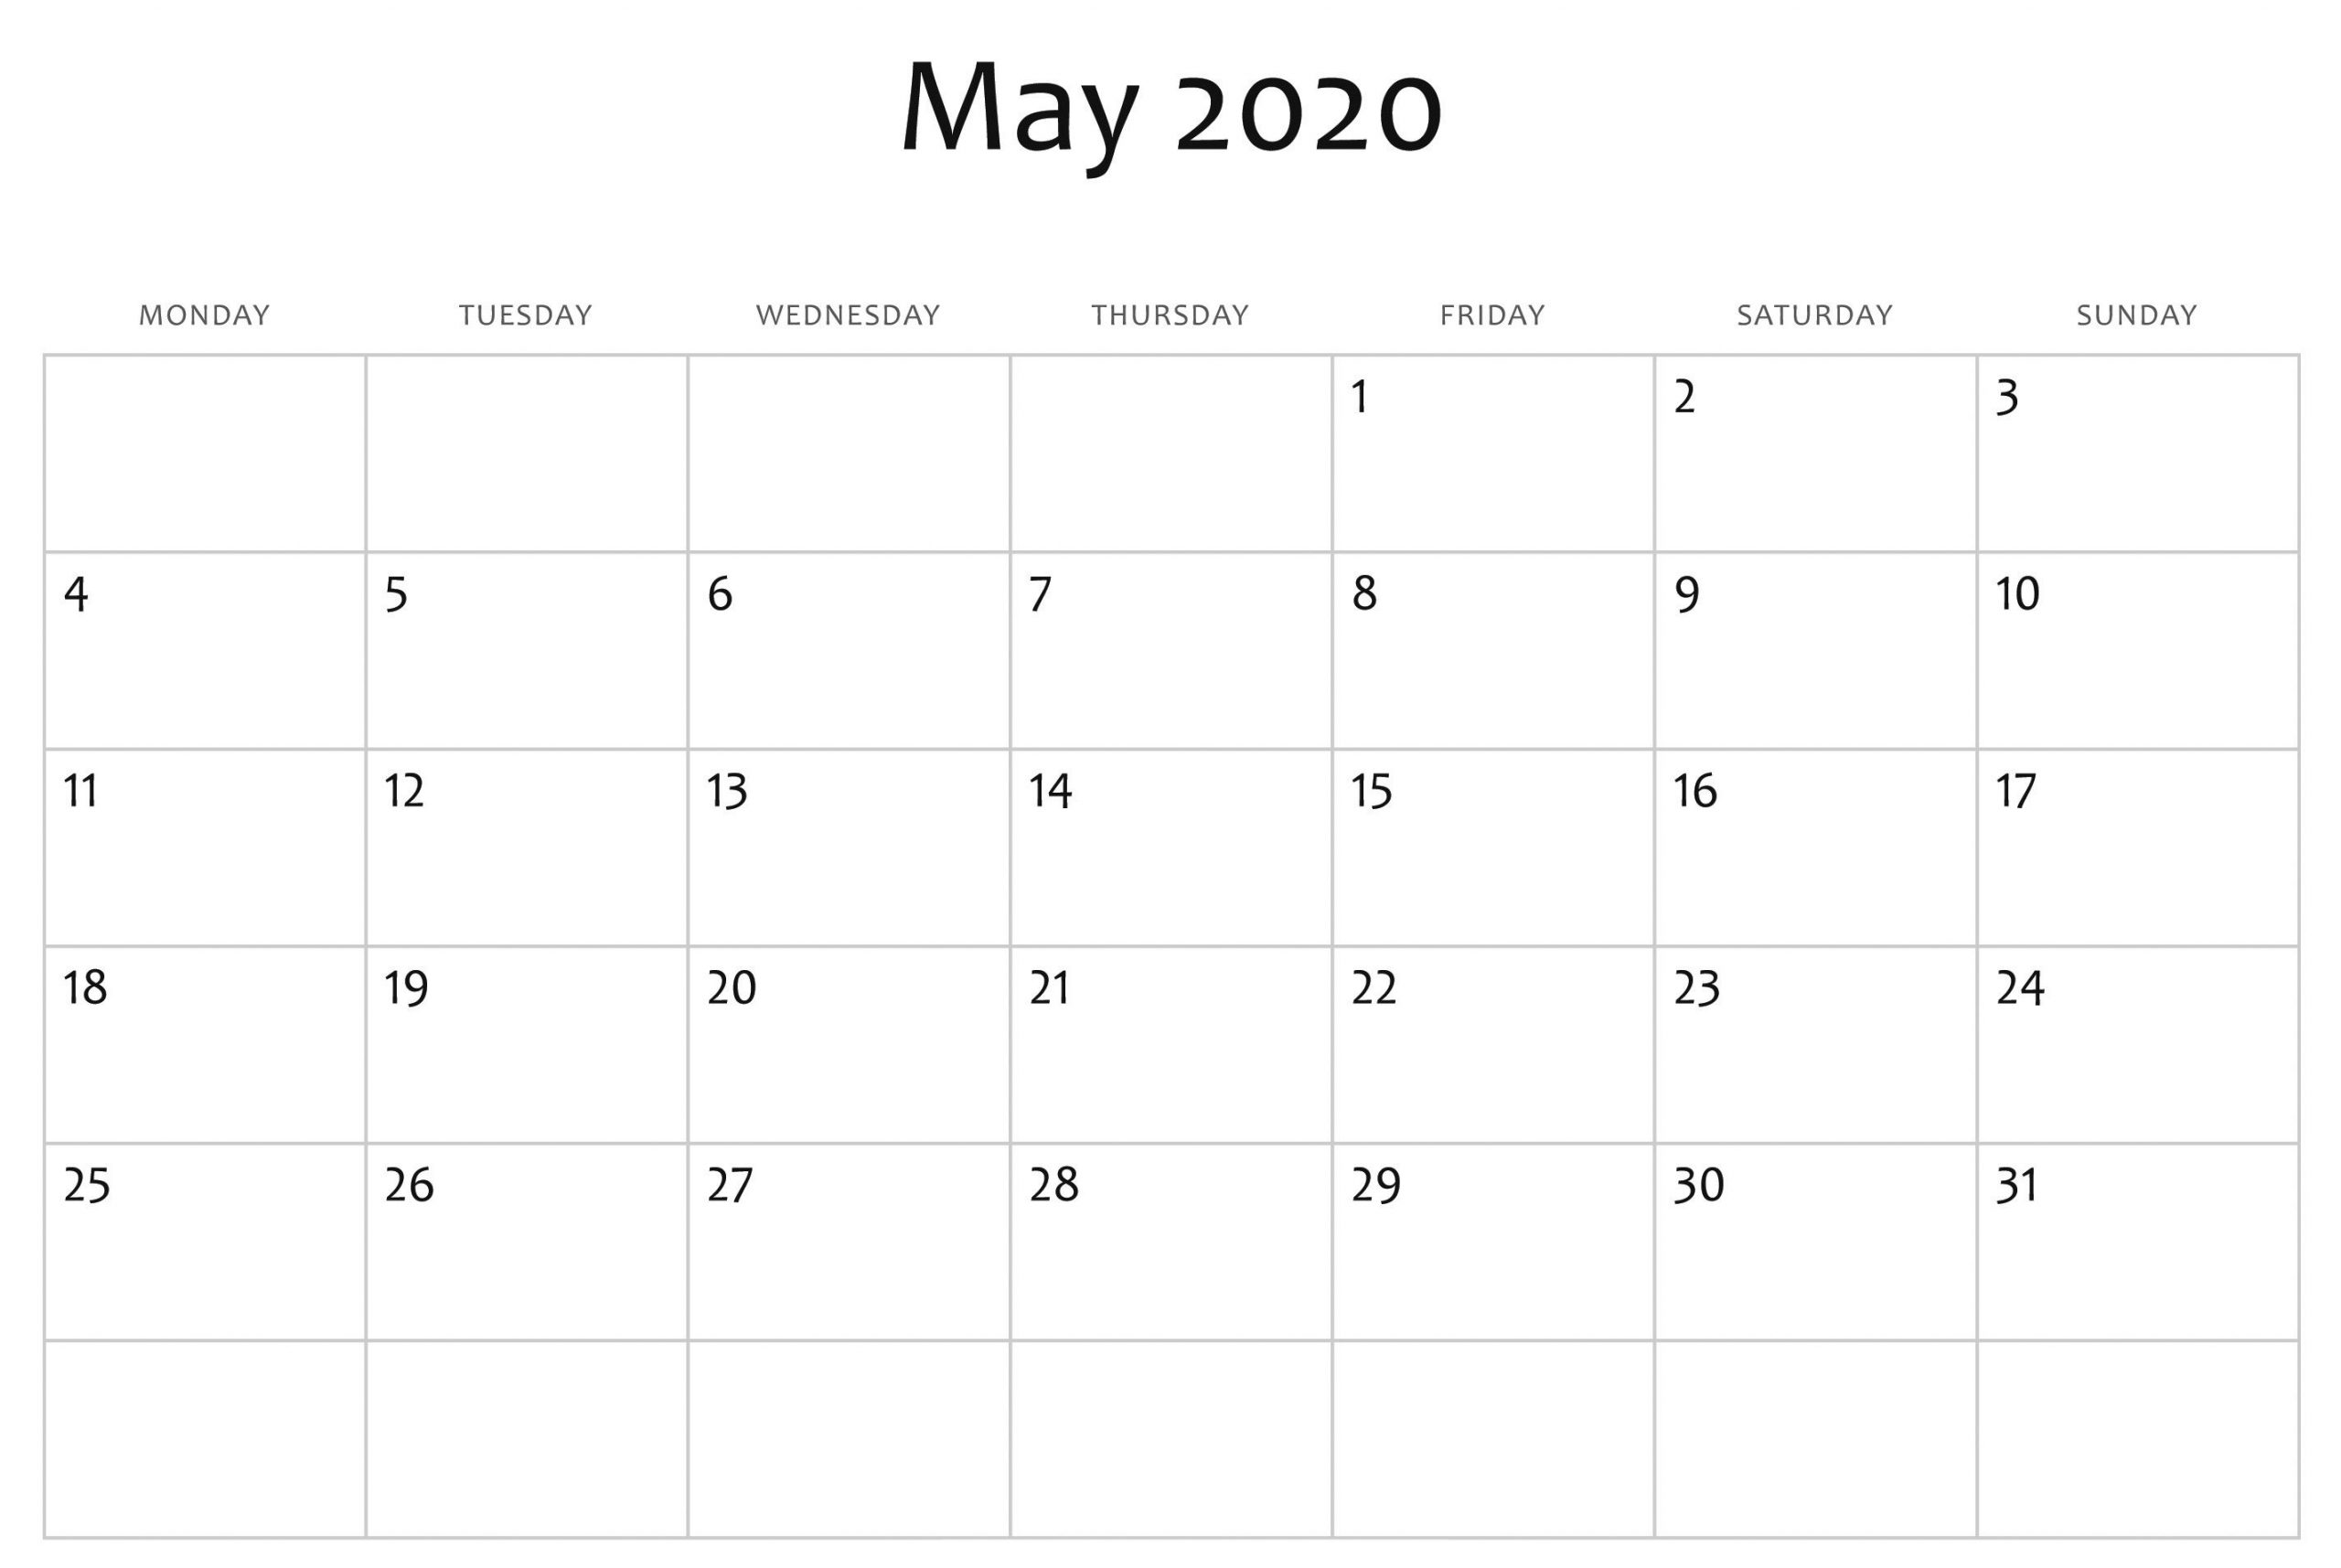 May 2020 Calendar Blank Template | May Calendar Printable